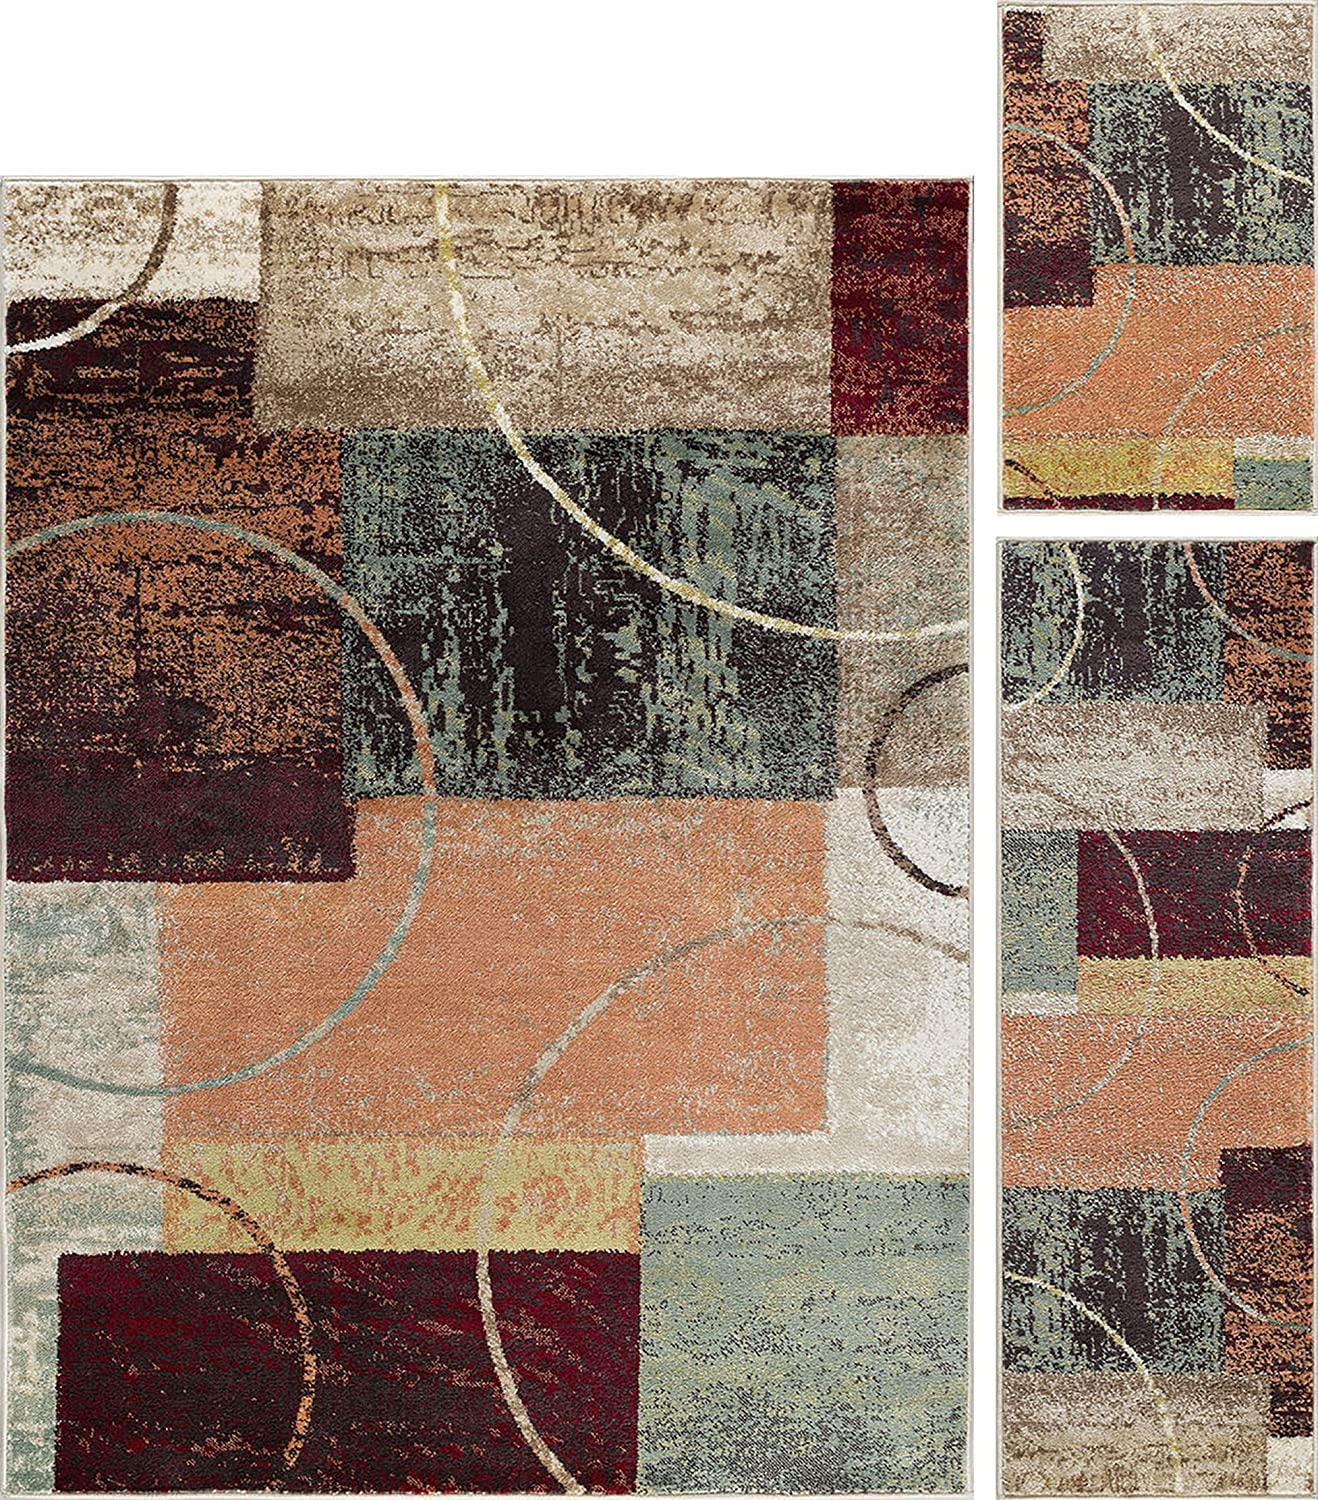 Universal Rugs 1004 Deco 3-Piece Contemporary Area Rug Set, 5 by 7-Feet/20 by 60-Inch/20 by 32-Inch, Multicolor DCO1004 SET3